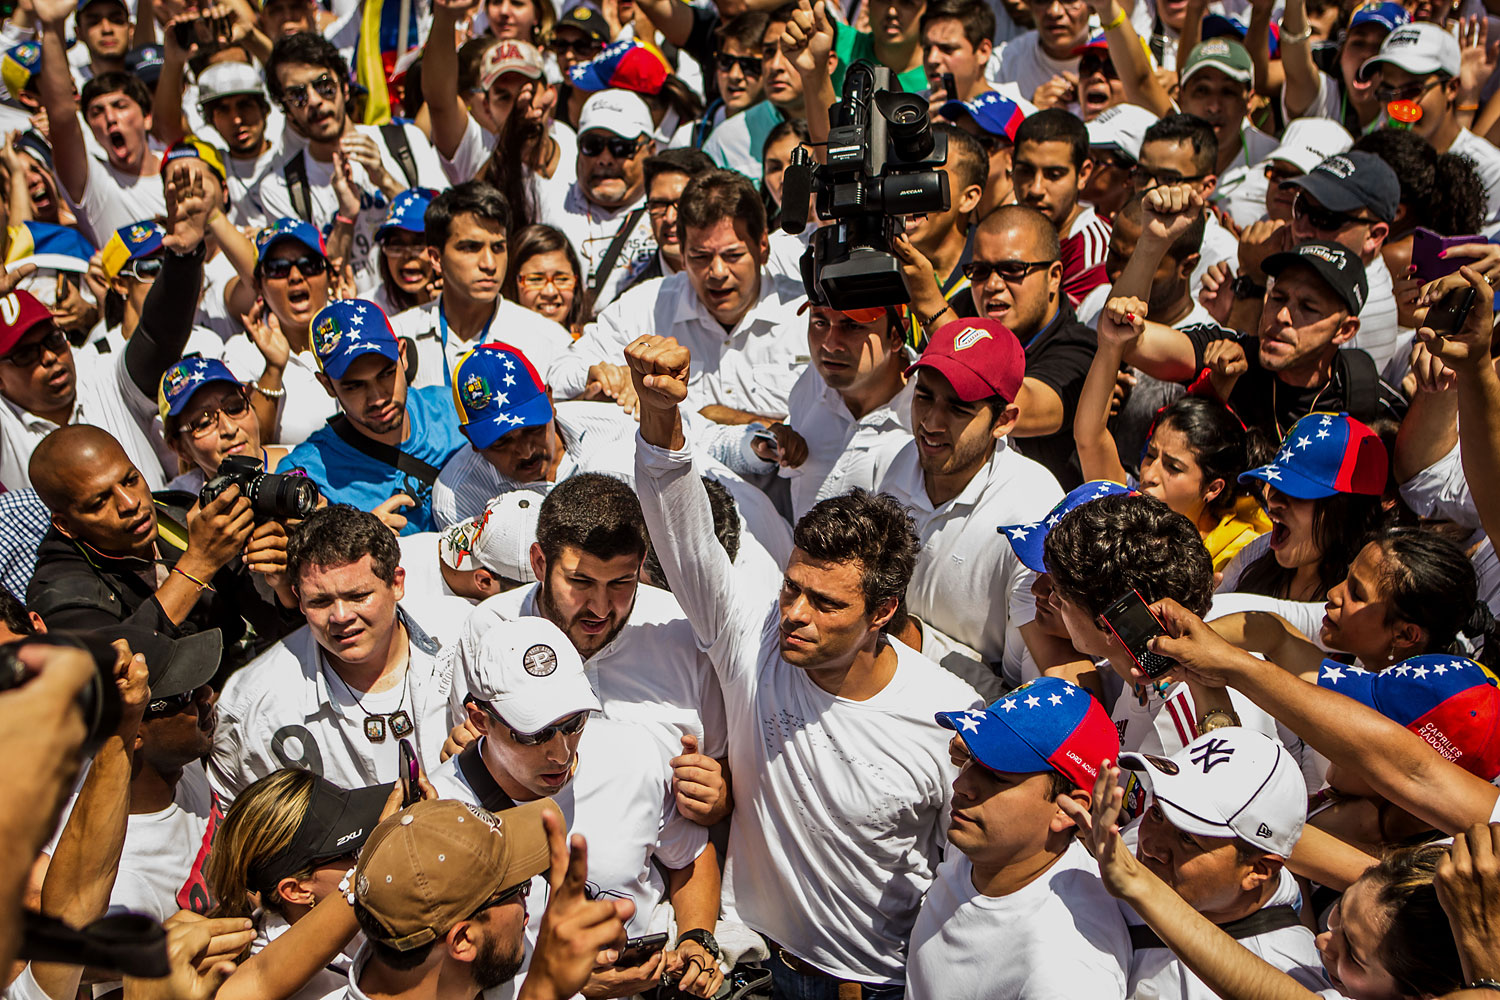 Opposition leader Leopoldo López arrives to the march in a swarm of supporters, Feb. 18, 2014.  Thousands of people took to the streets today to support López as he surrendered to police during a peaceful march in Caracas.